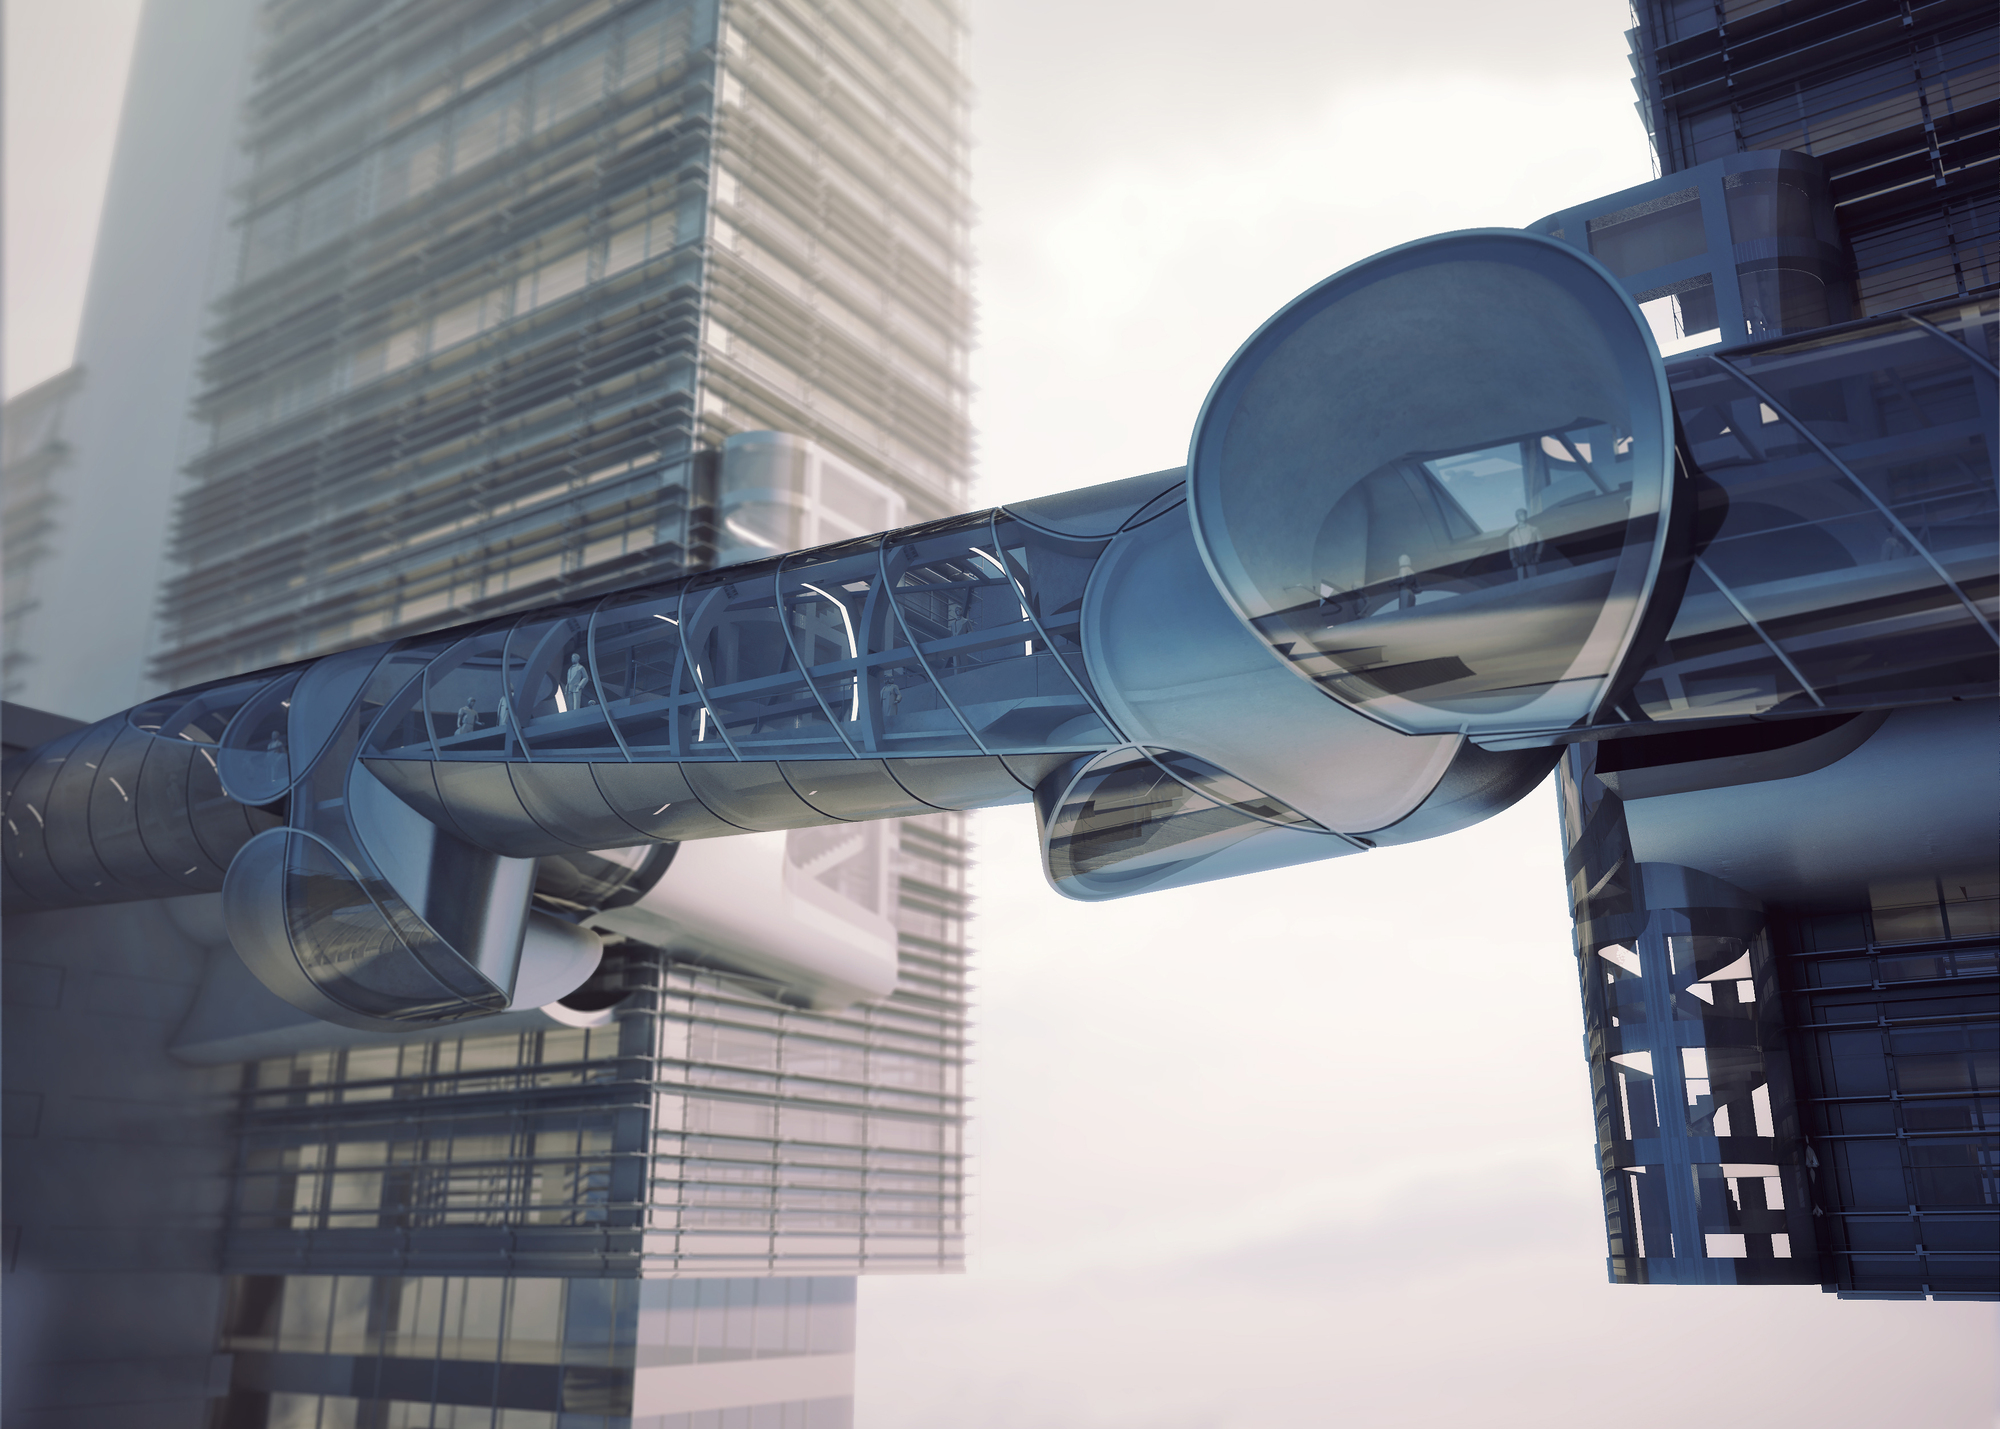 Preliminary Research Office Proposes Conical Sky Bridge For Drone